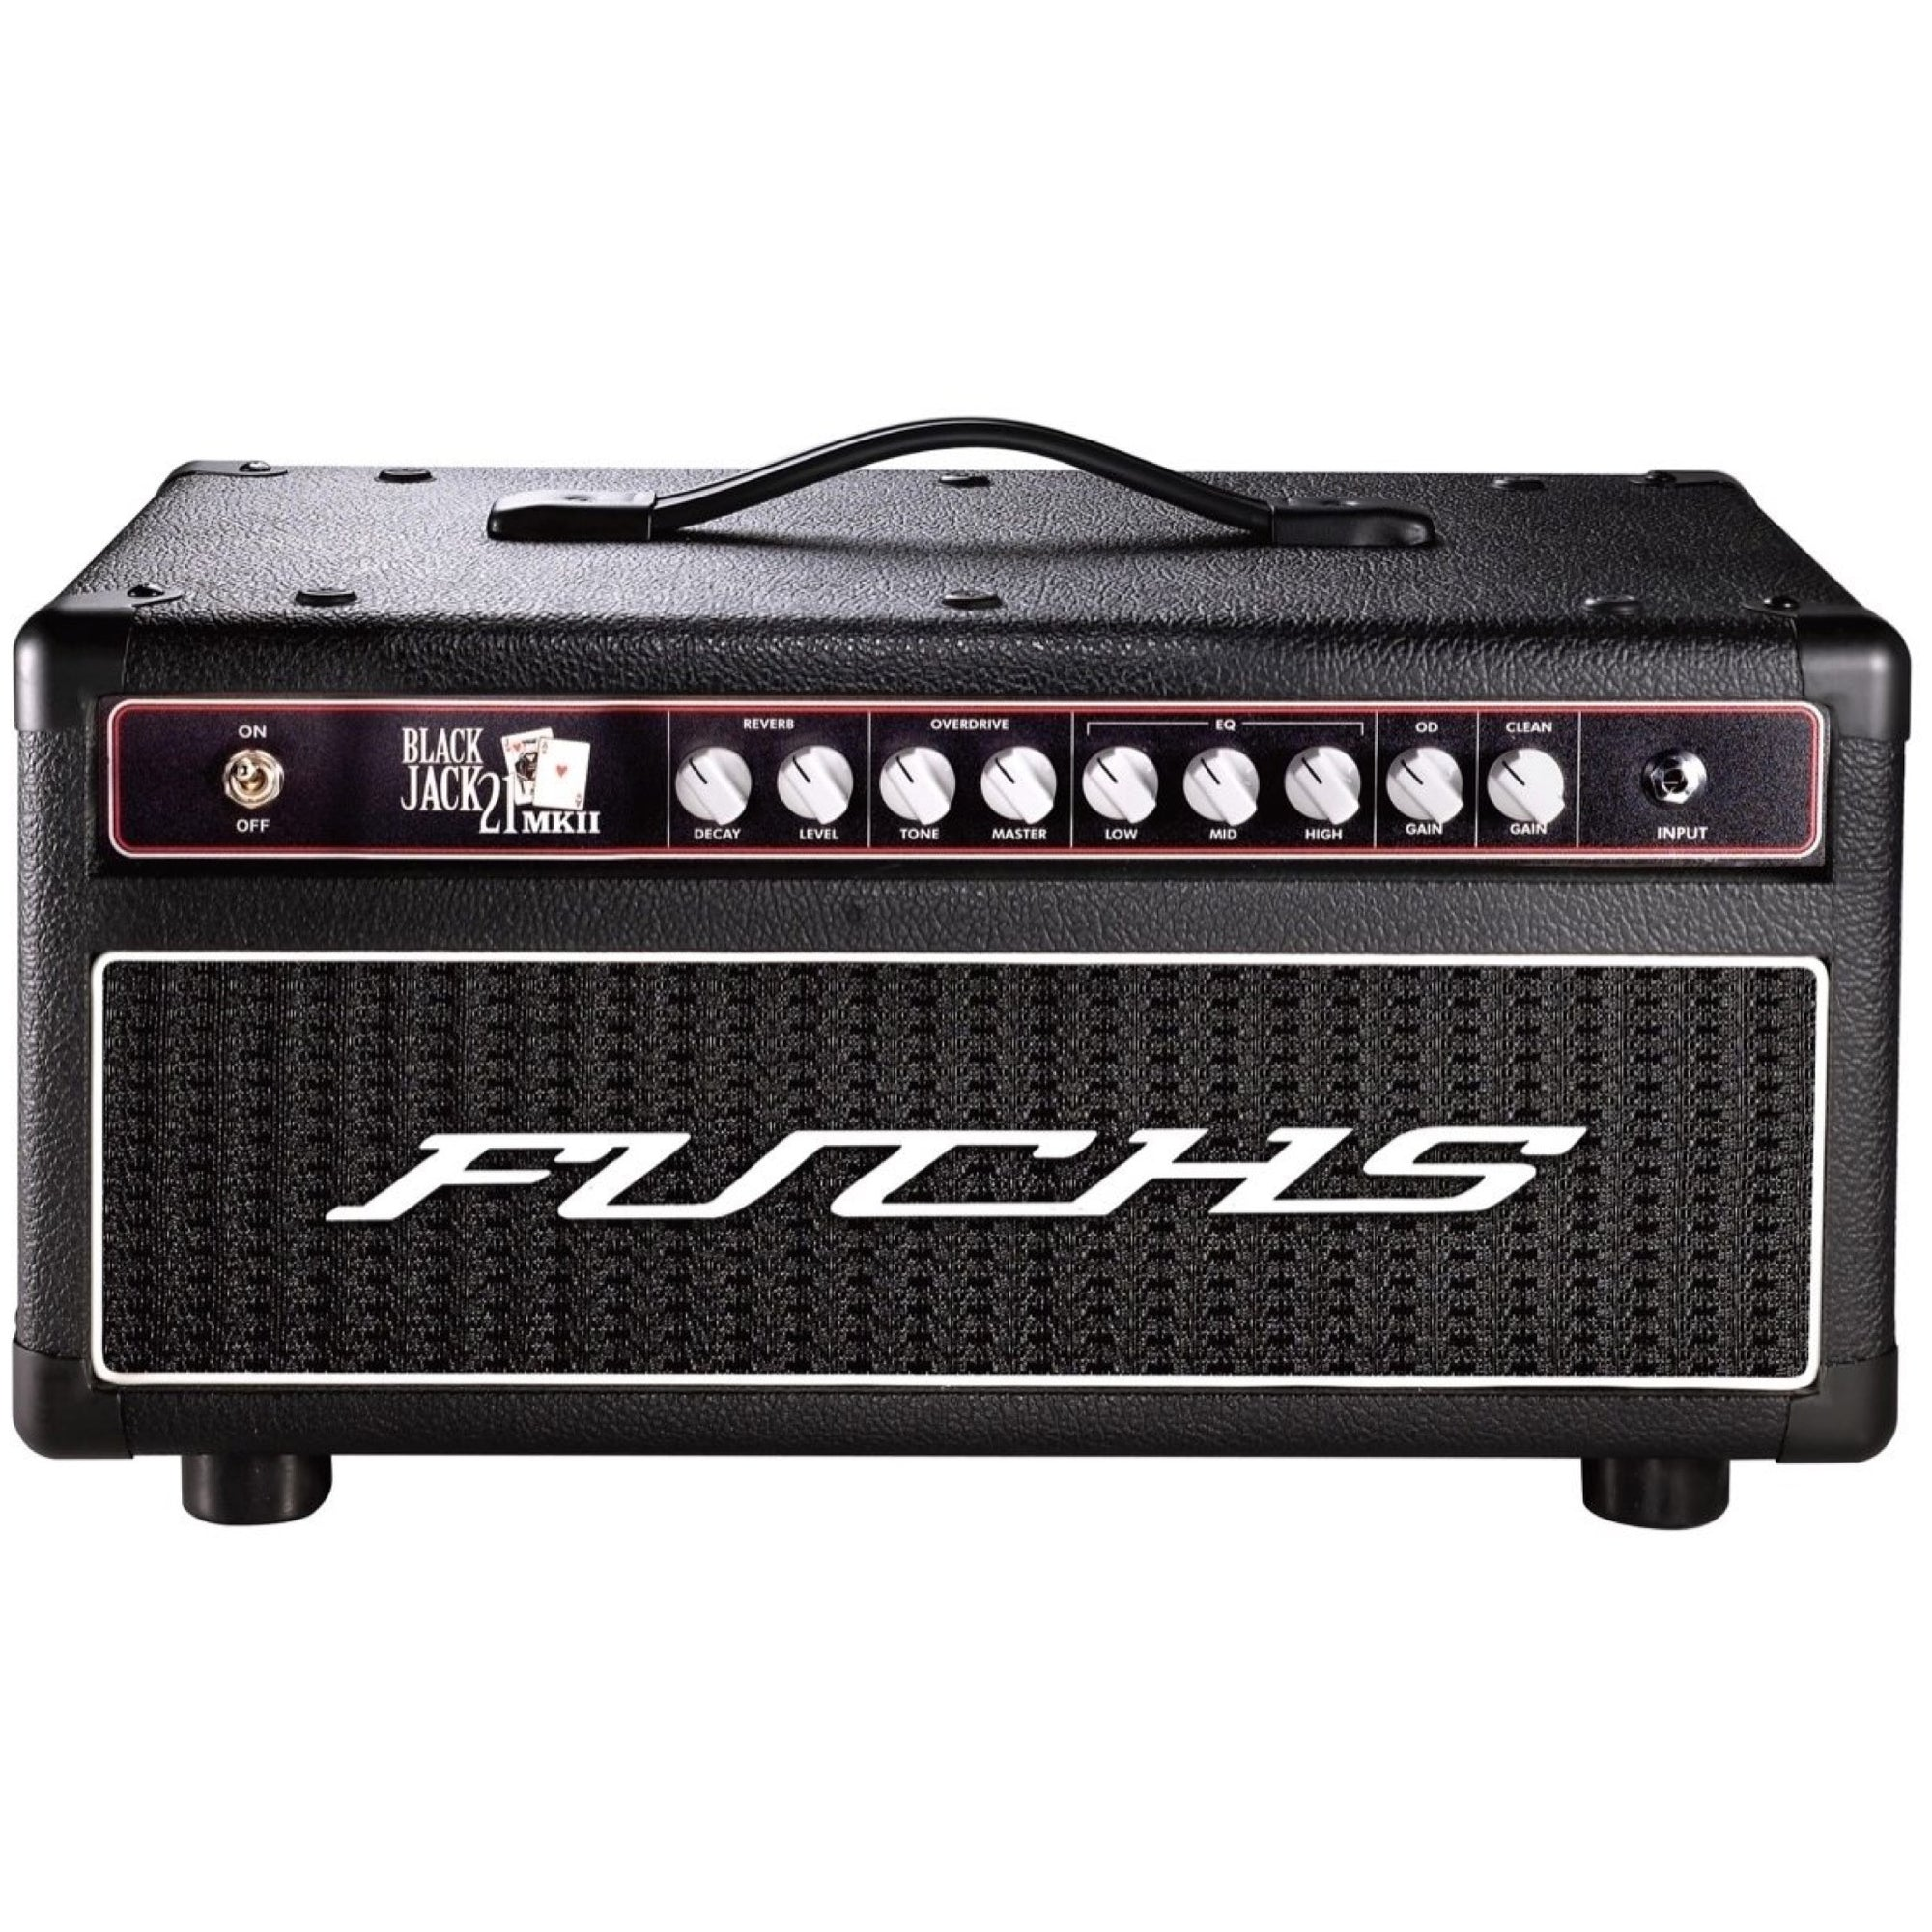 Fuchs Blackjack 21 Guitar Amplifier Head, Black